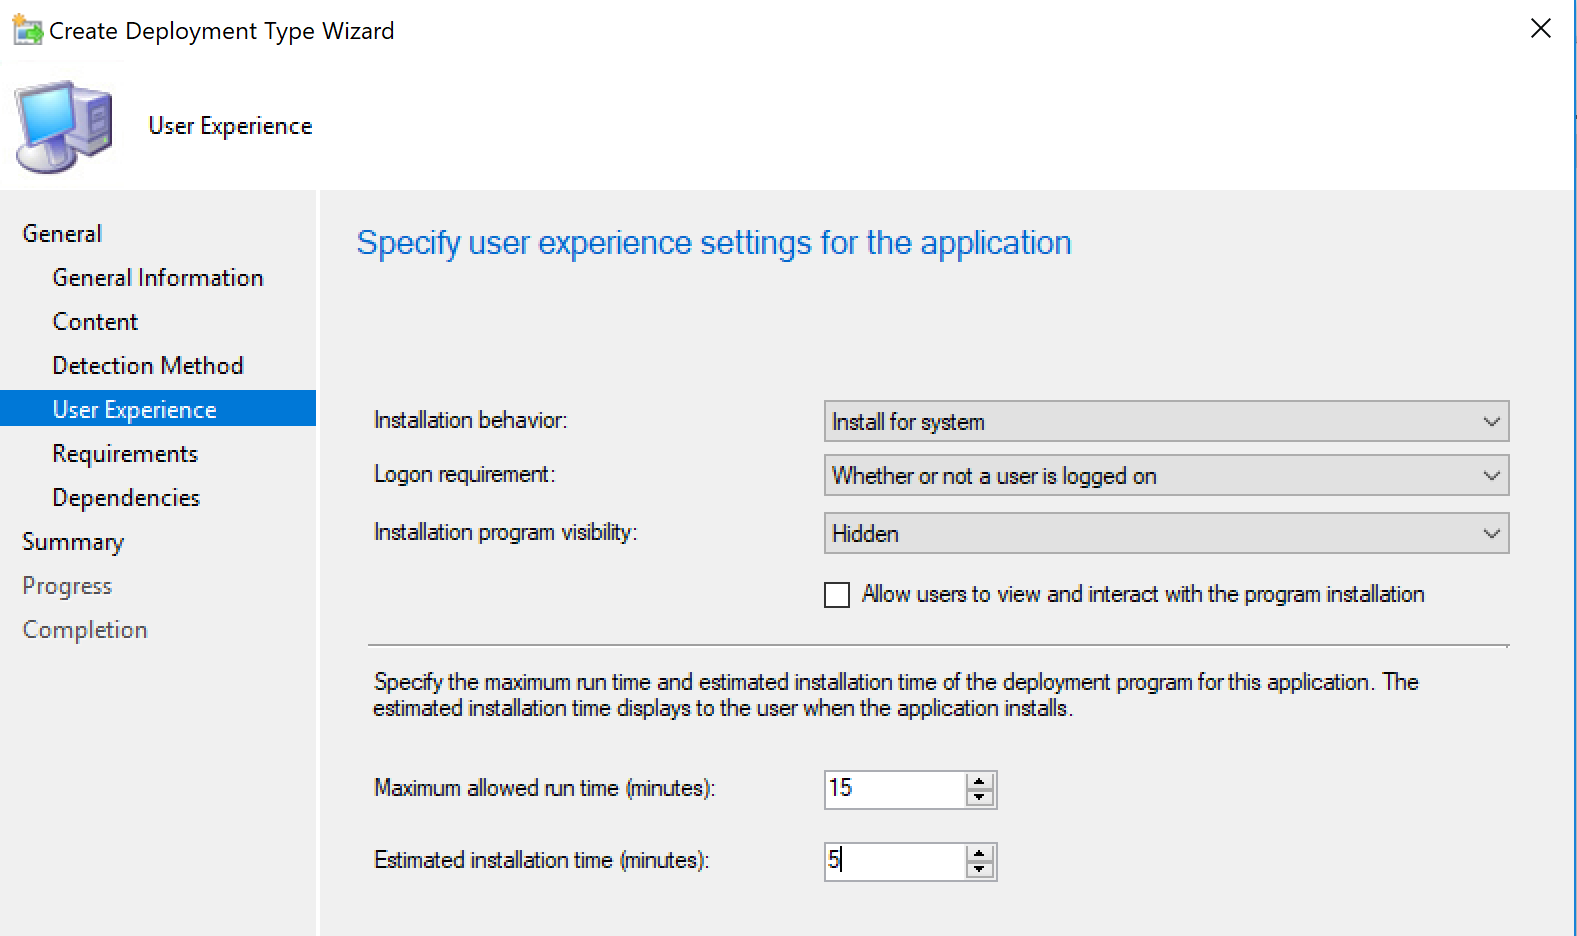 Example user experience settings for password reset application in SCCM